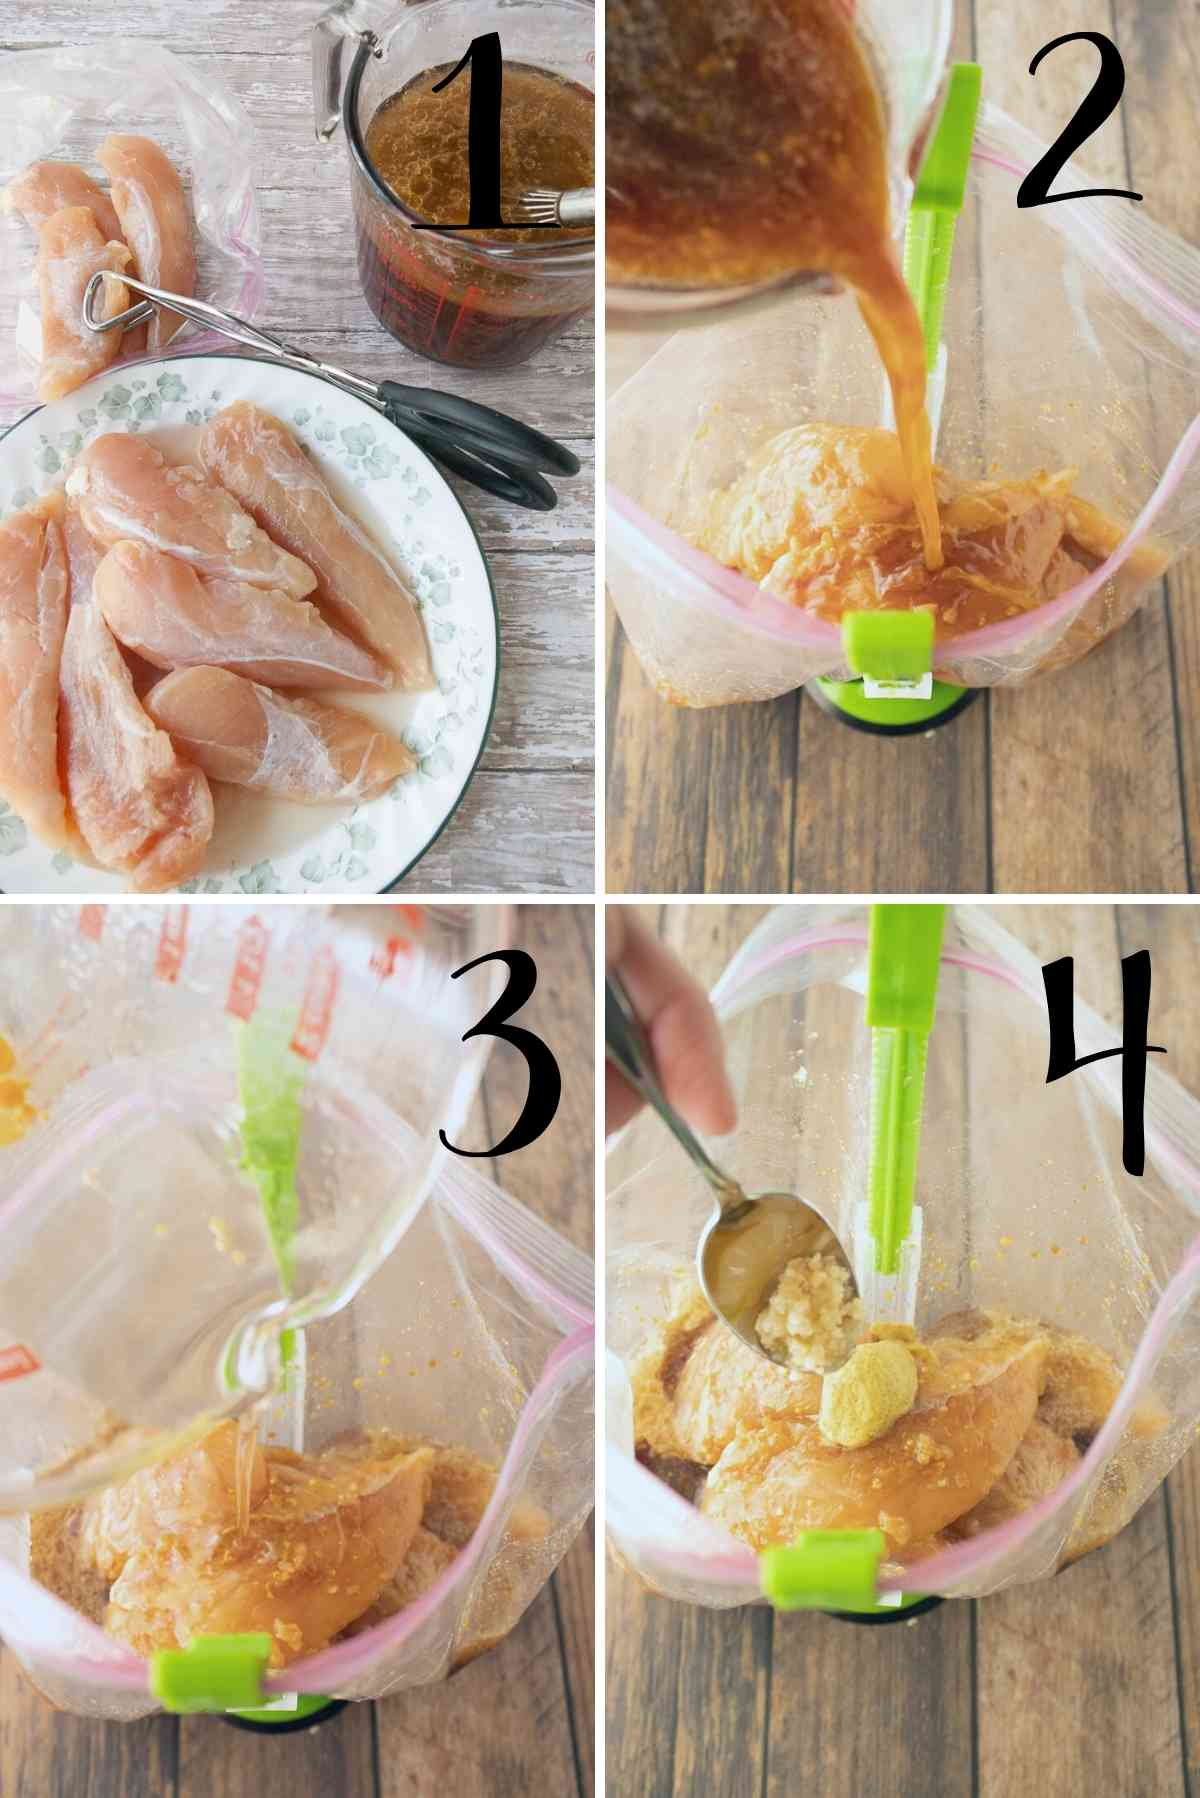 Raw chicken put in a gallon size bag with marinade ingredients being added to them.